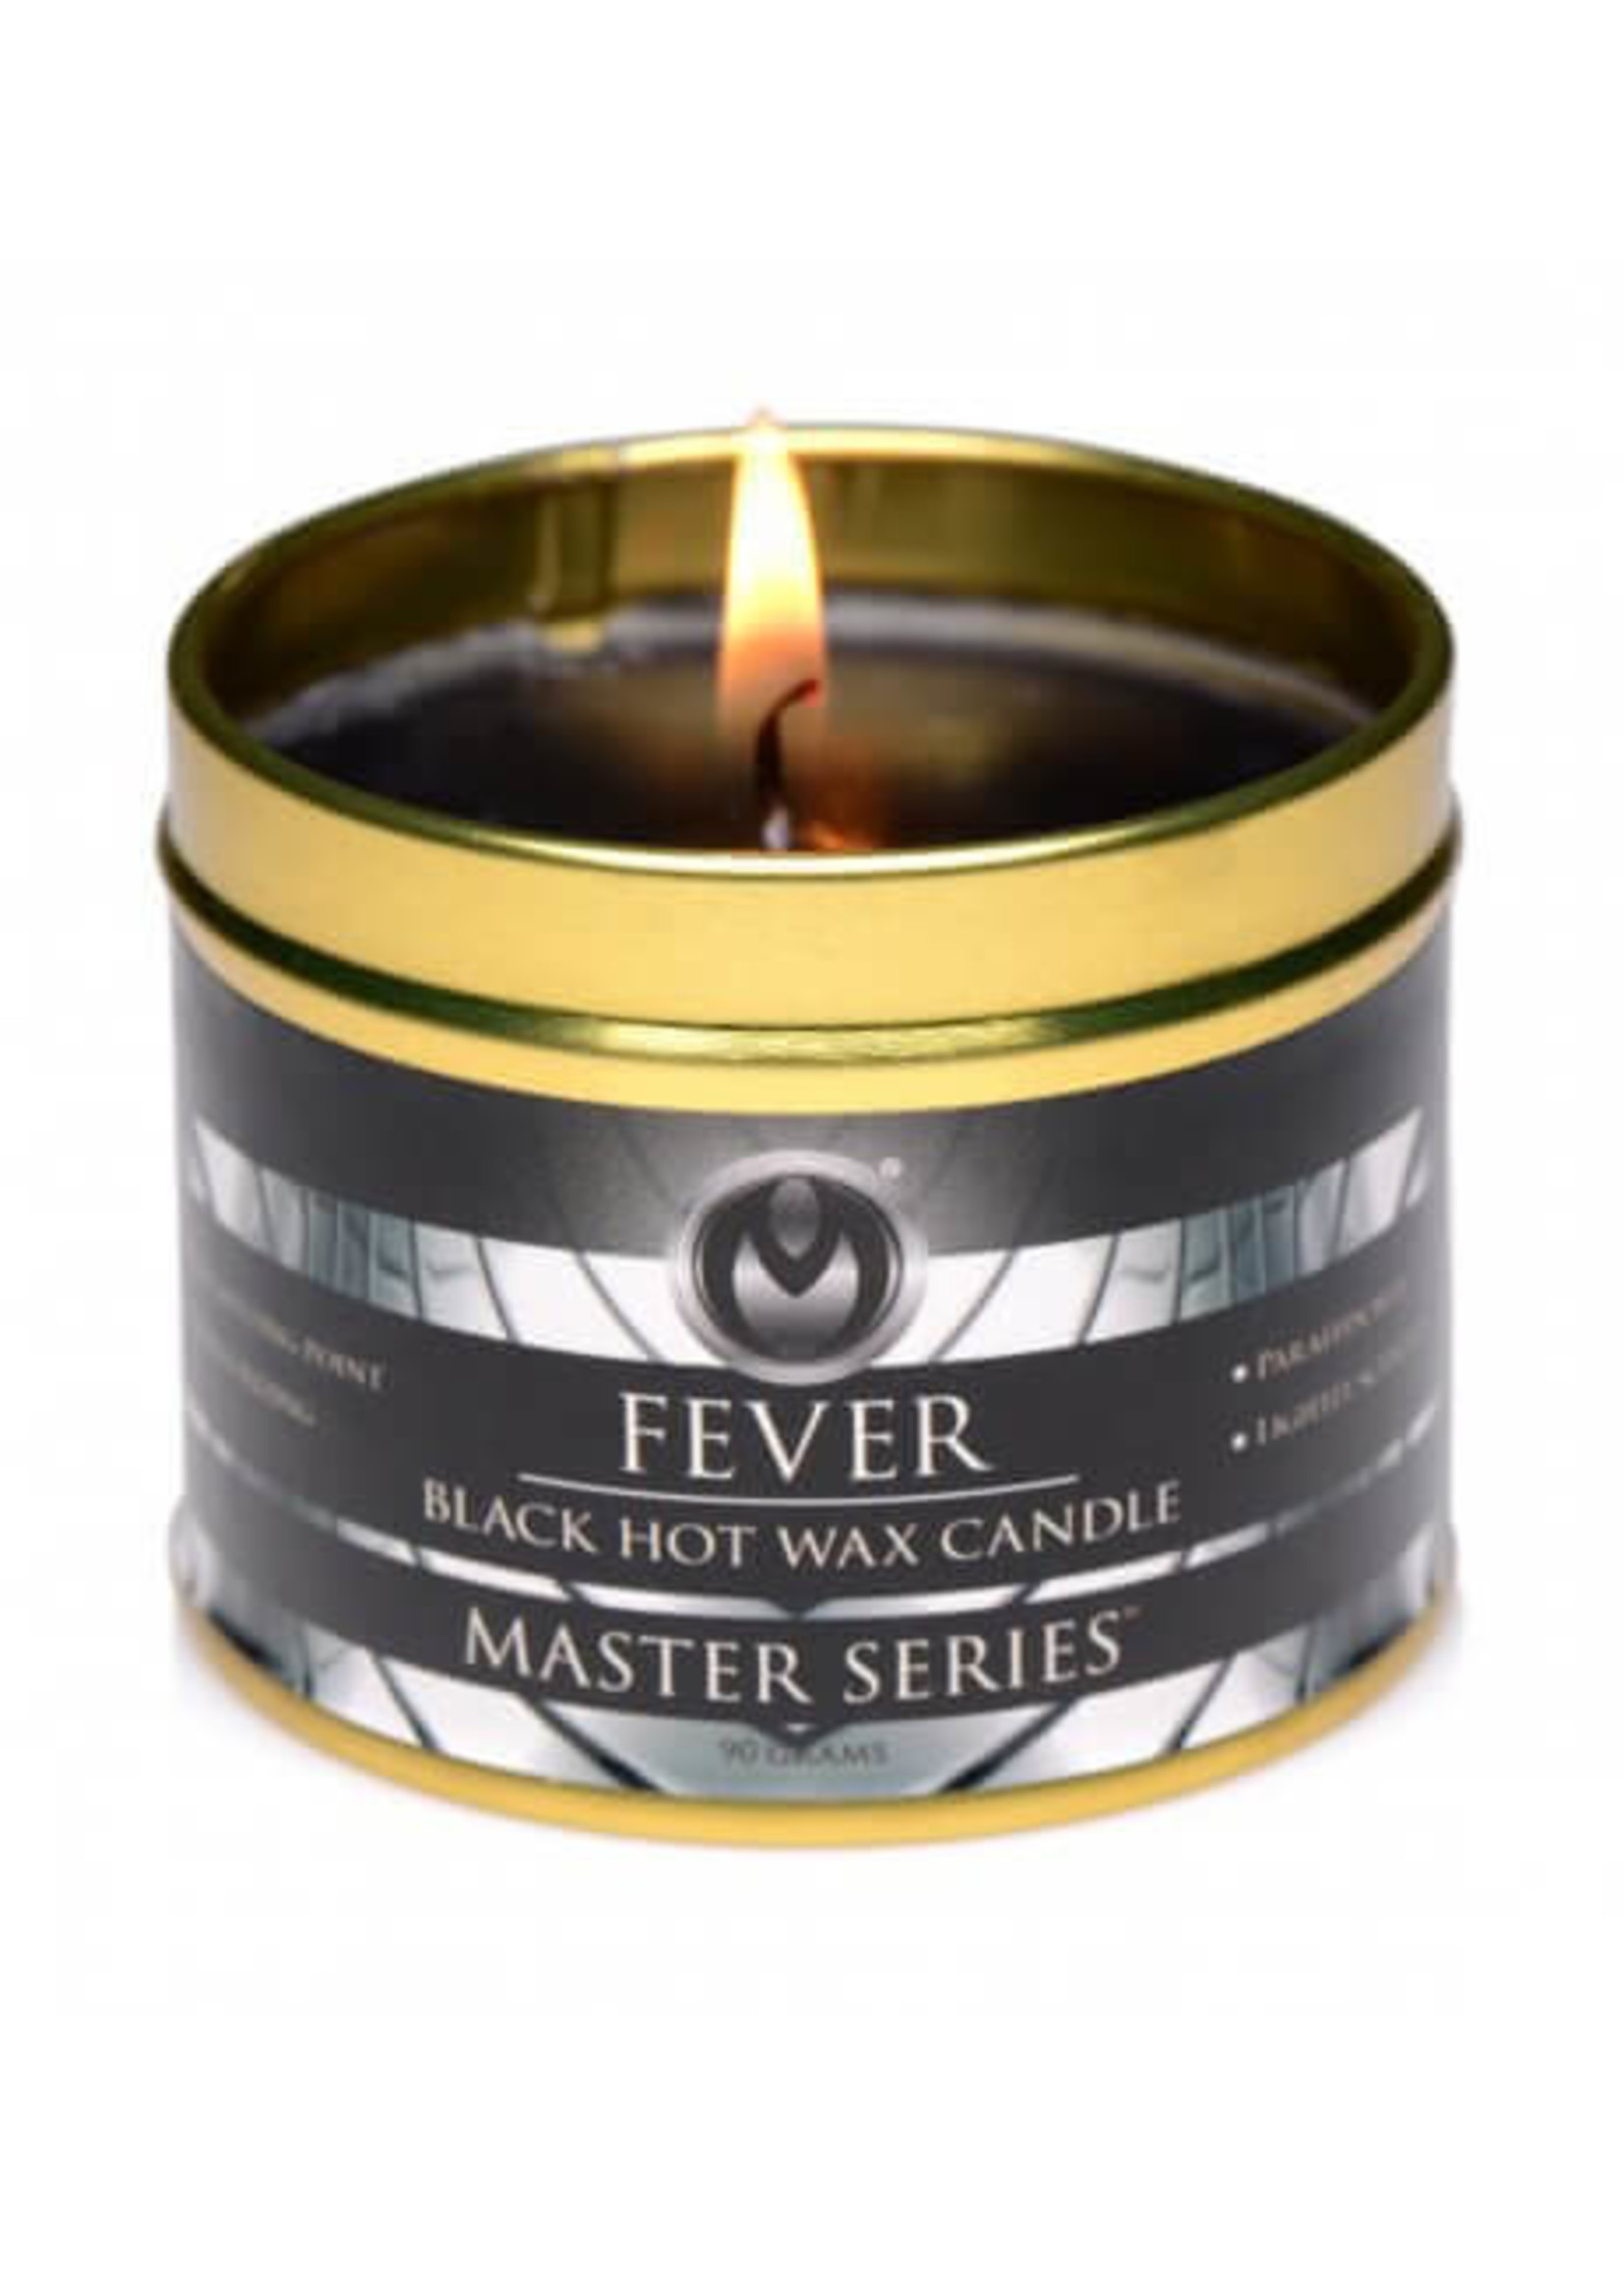 Fever Hot Wax Candle - Black